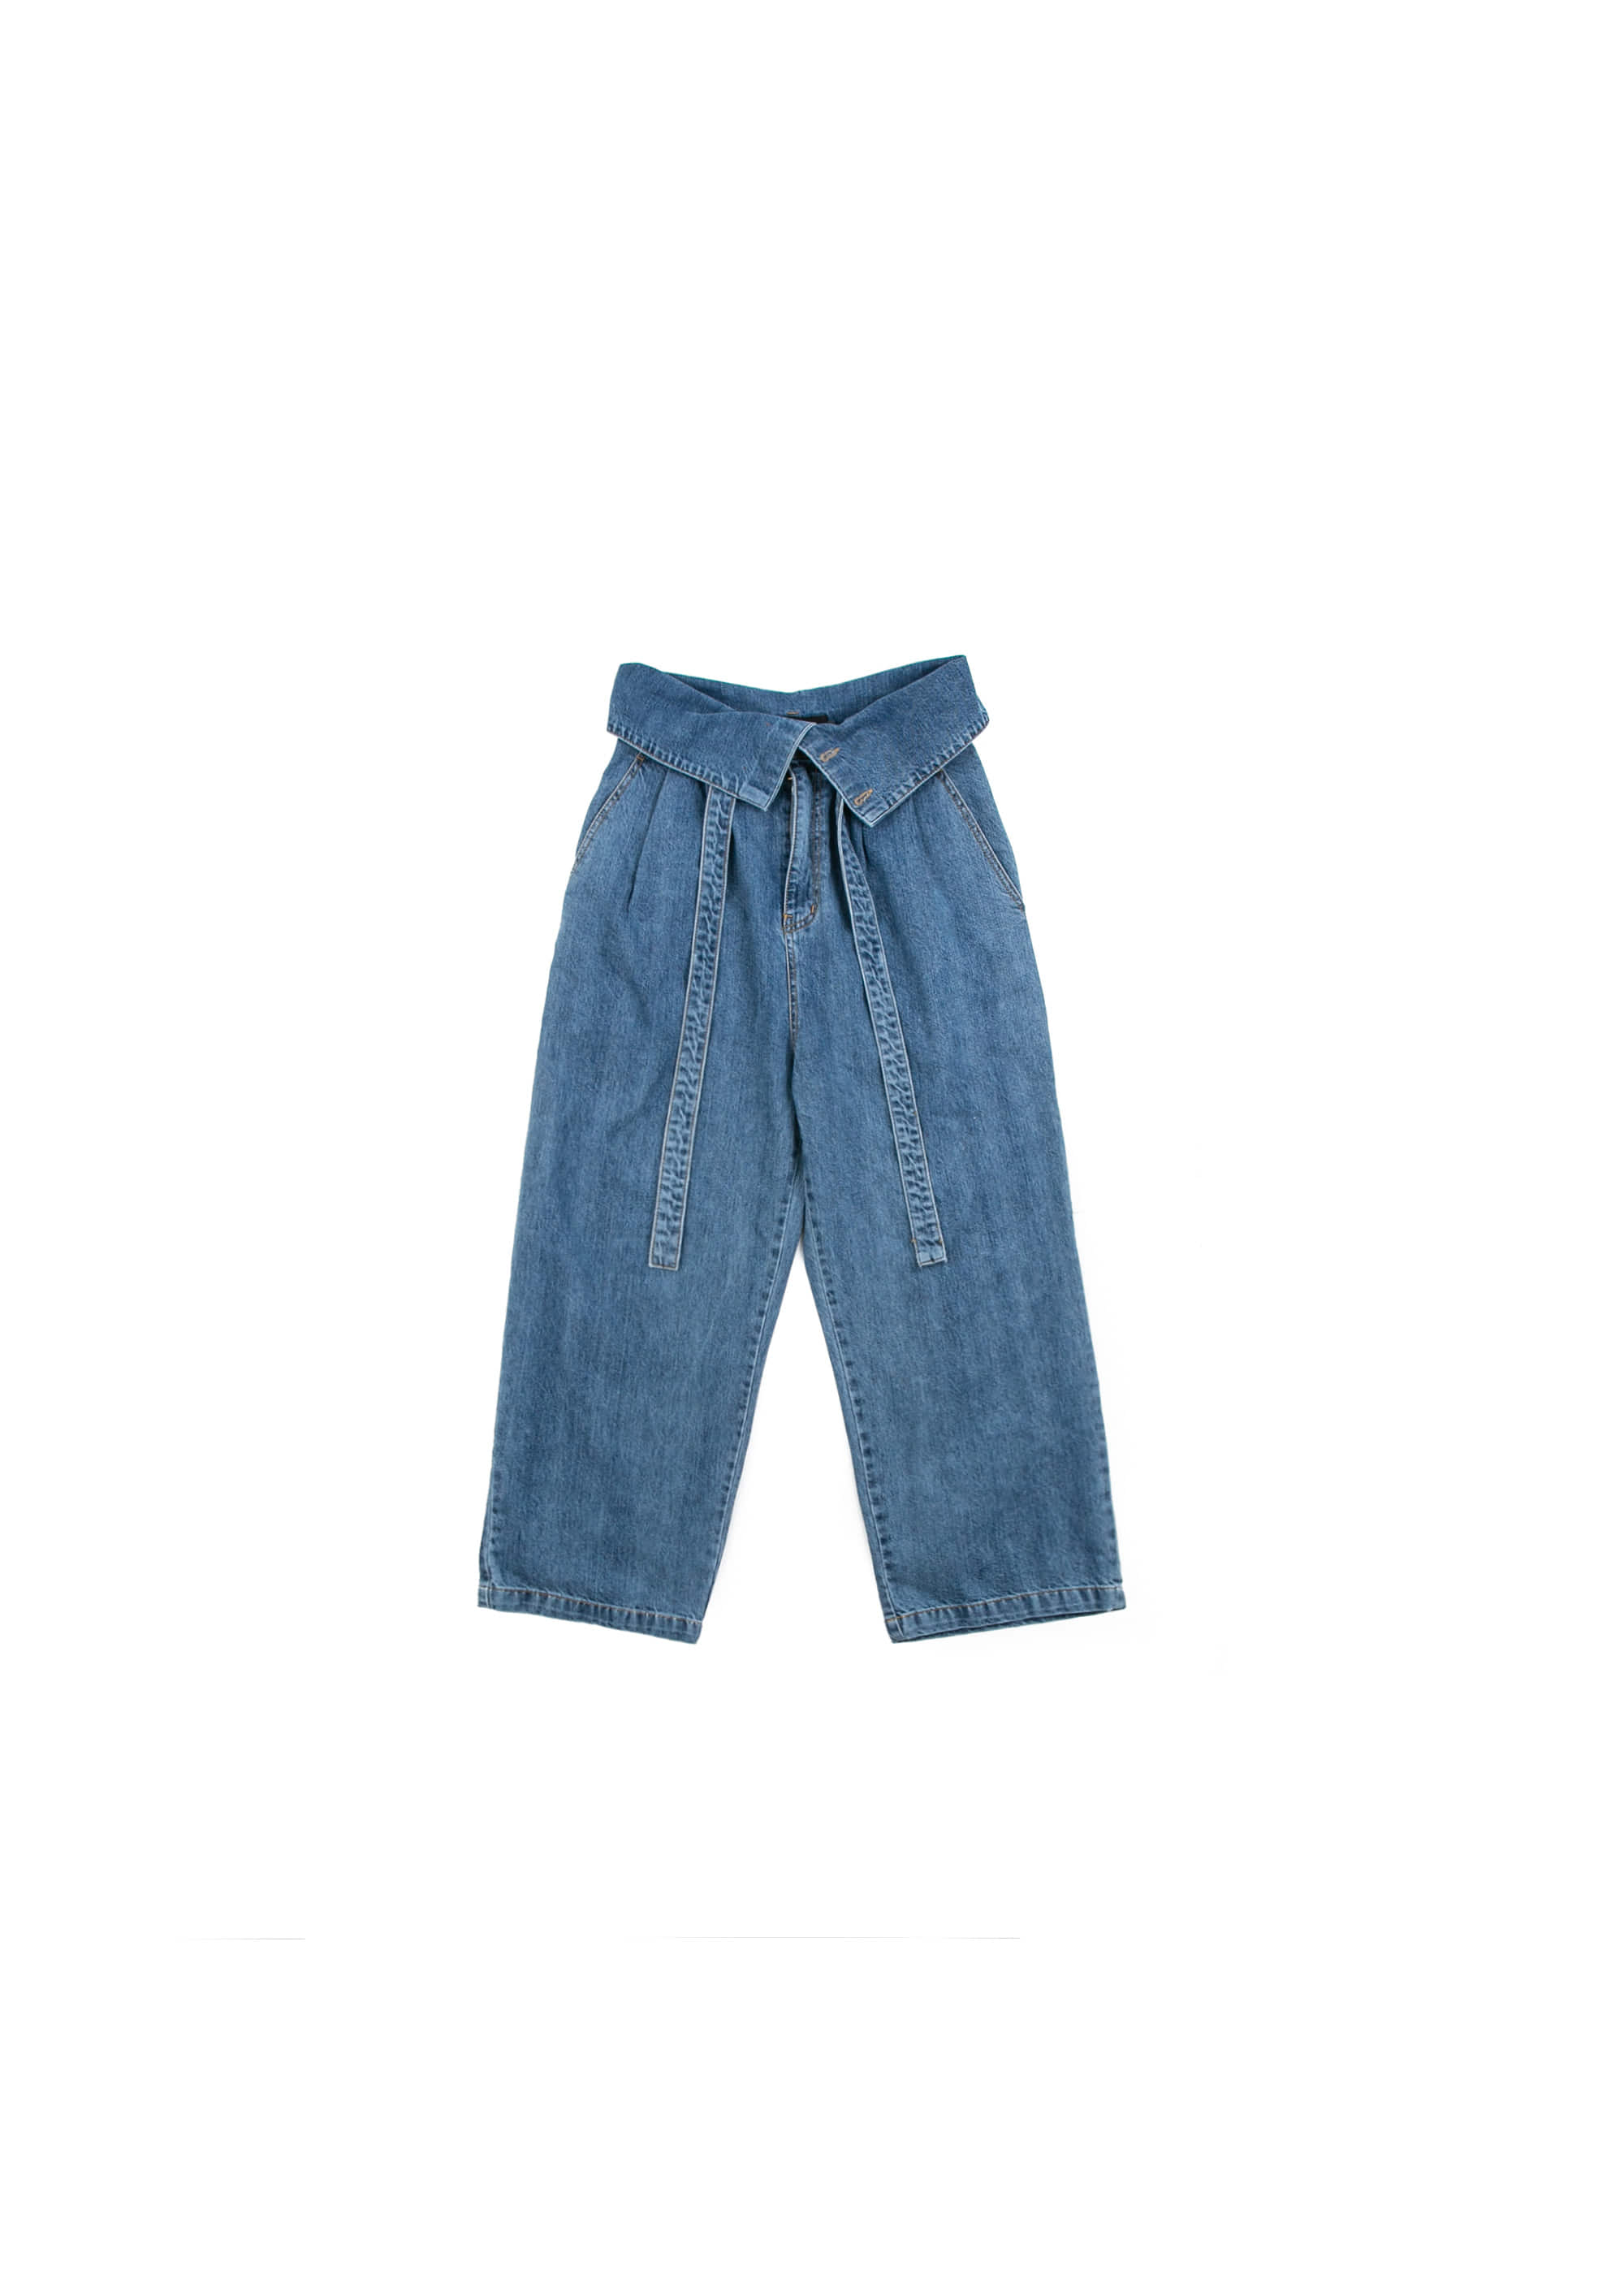 Over Fold Denim Pants